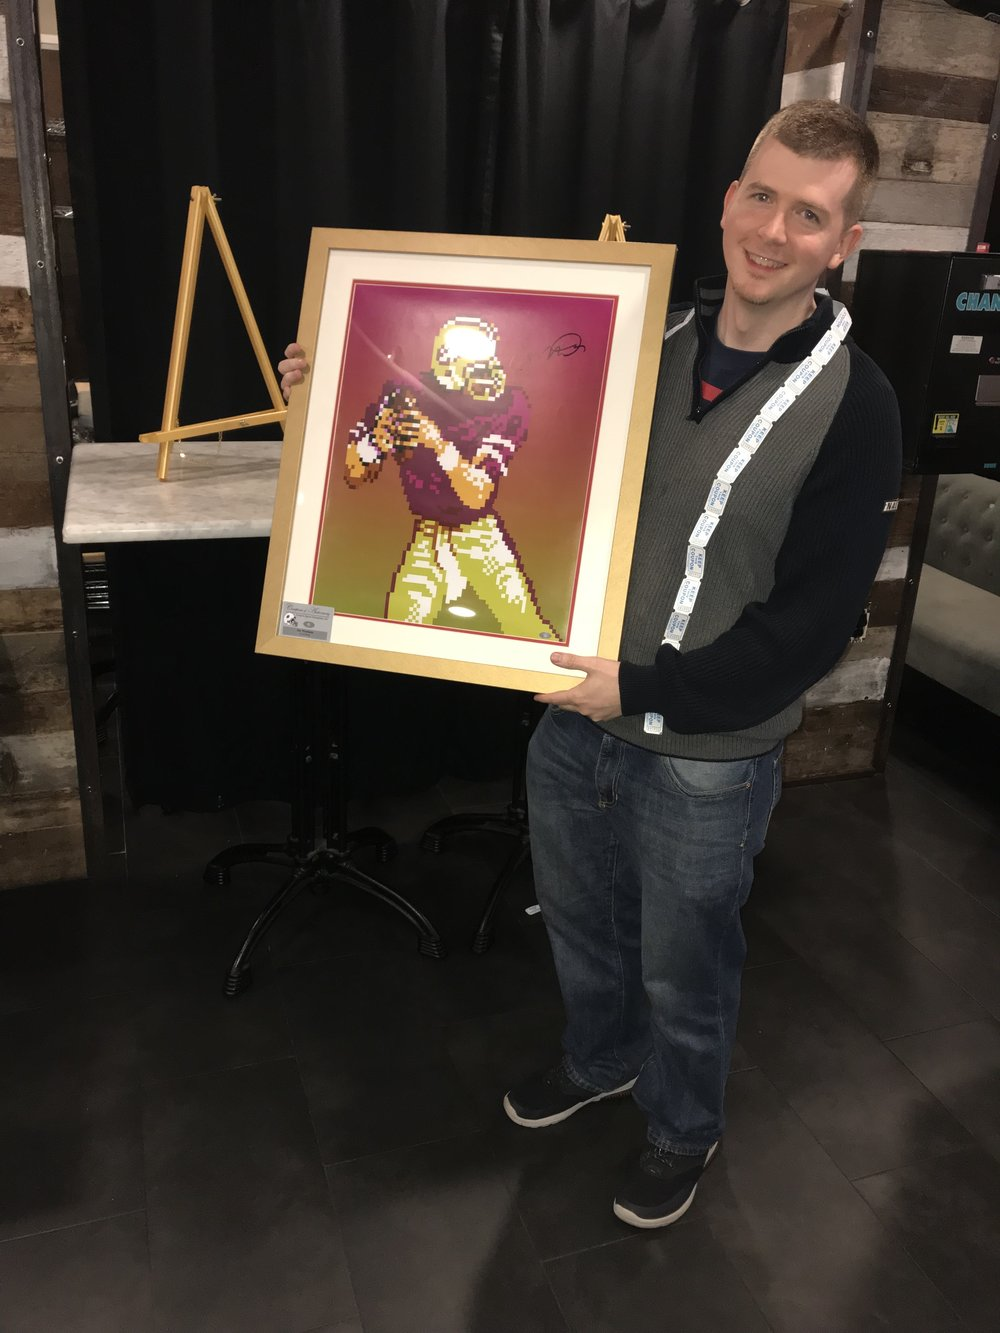 Not only did he win the tournament, he also walked away with the autographed Joe Montana Tecmo framed print.